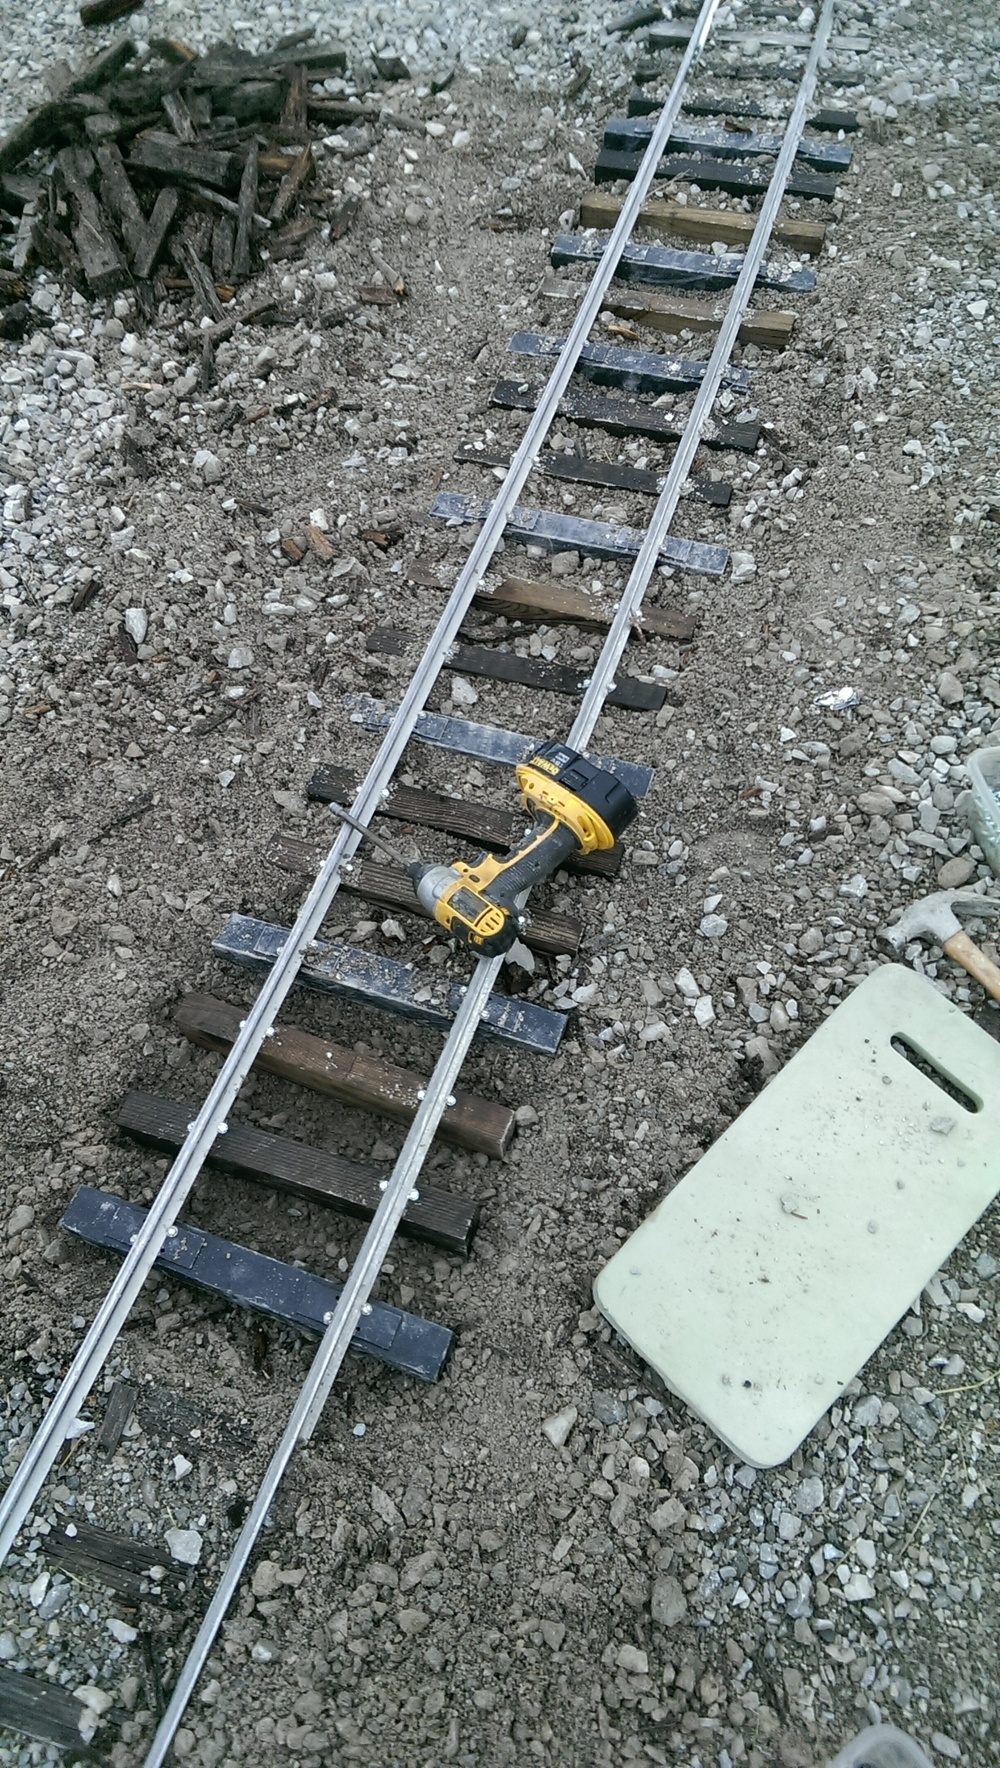 Upper Loop track (From Triple Bridge going toward High Bridge) getting some new plastic and wood ties. Photo Taken during repairs.